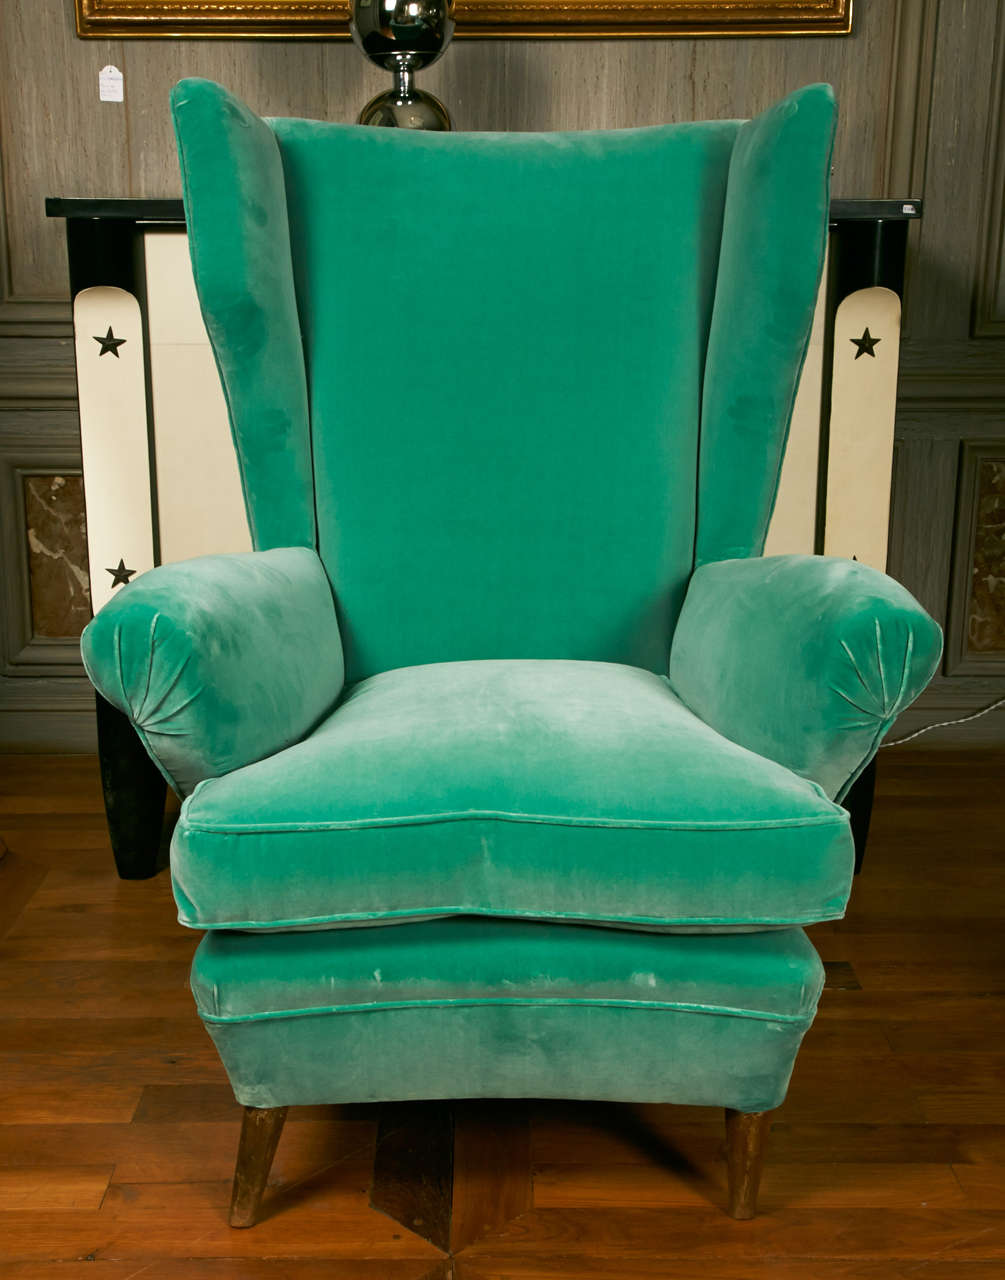 Comfortable Pair of Green Armchairs with Rubelli Velvet Upholstery, Italy, 1960 1